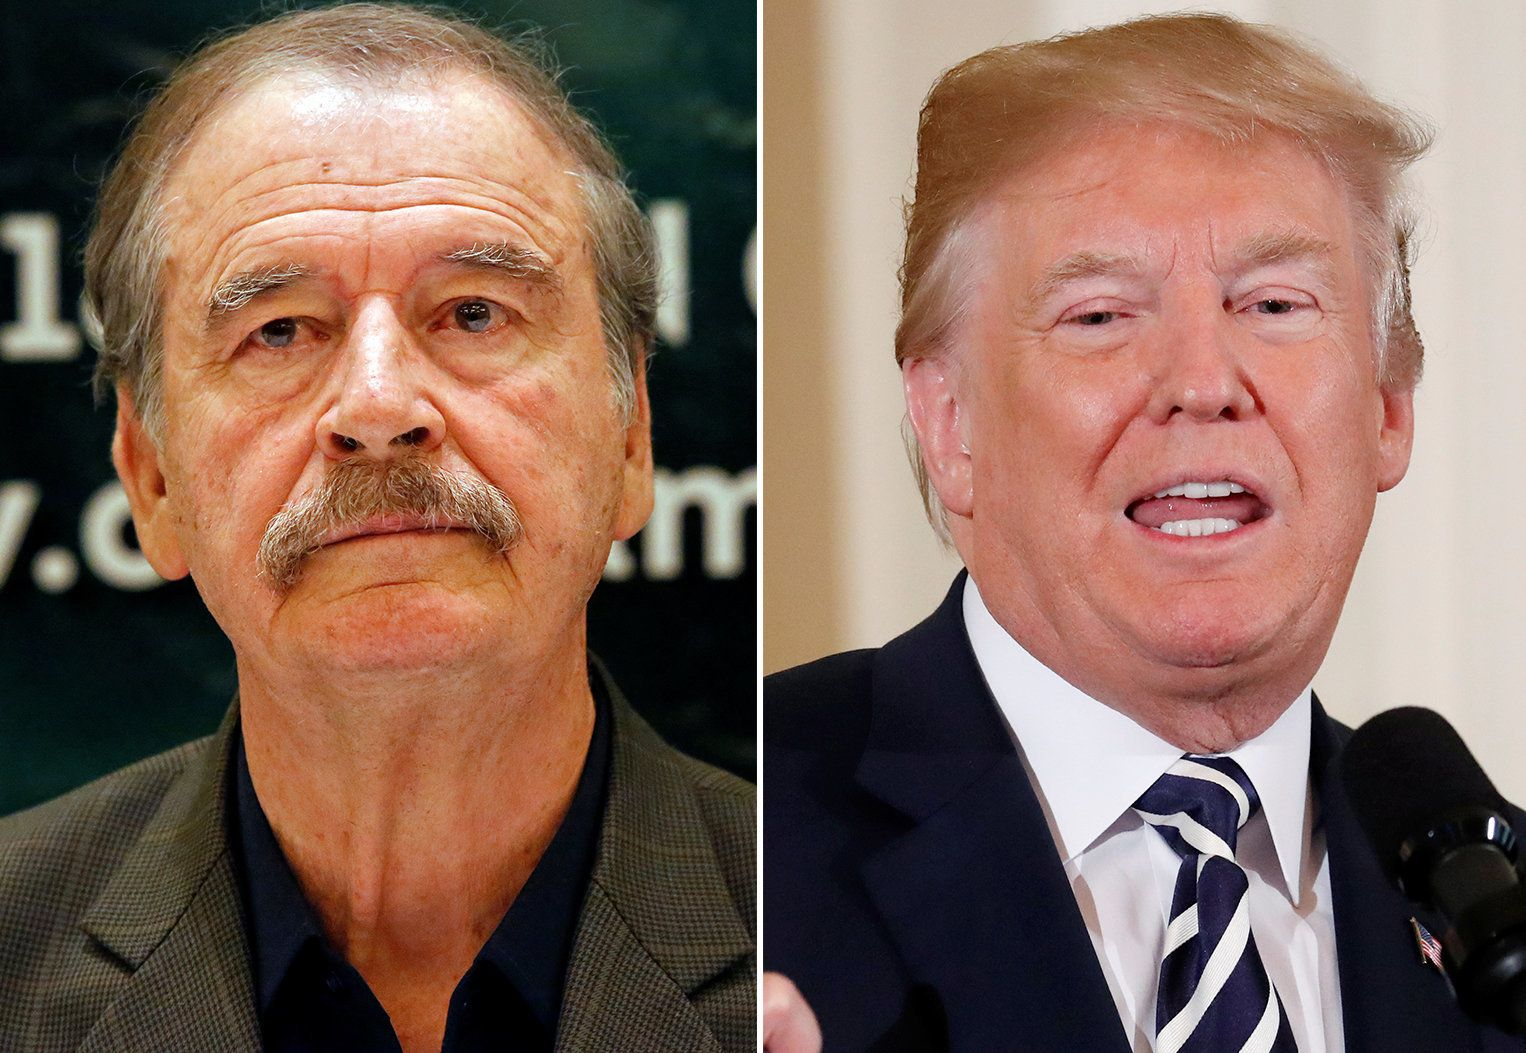 Former Mexican President Burns Total Fraud Trump By Rewriting One Of His Tweets